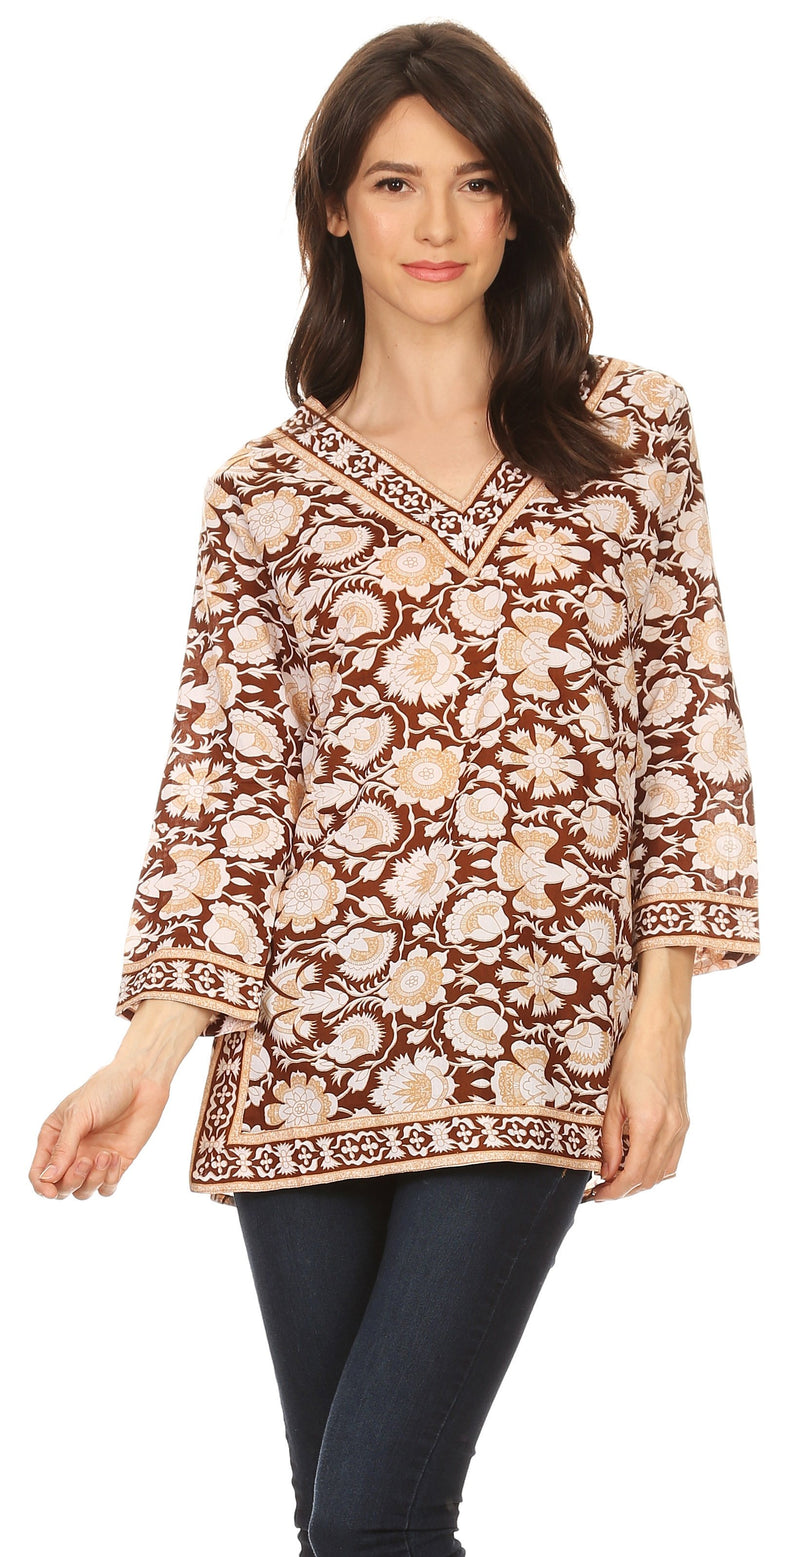 Sakkas Assia Damask Floral Long Sleeve Blouse Tunic